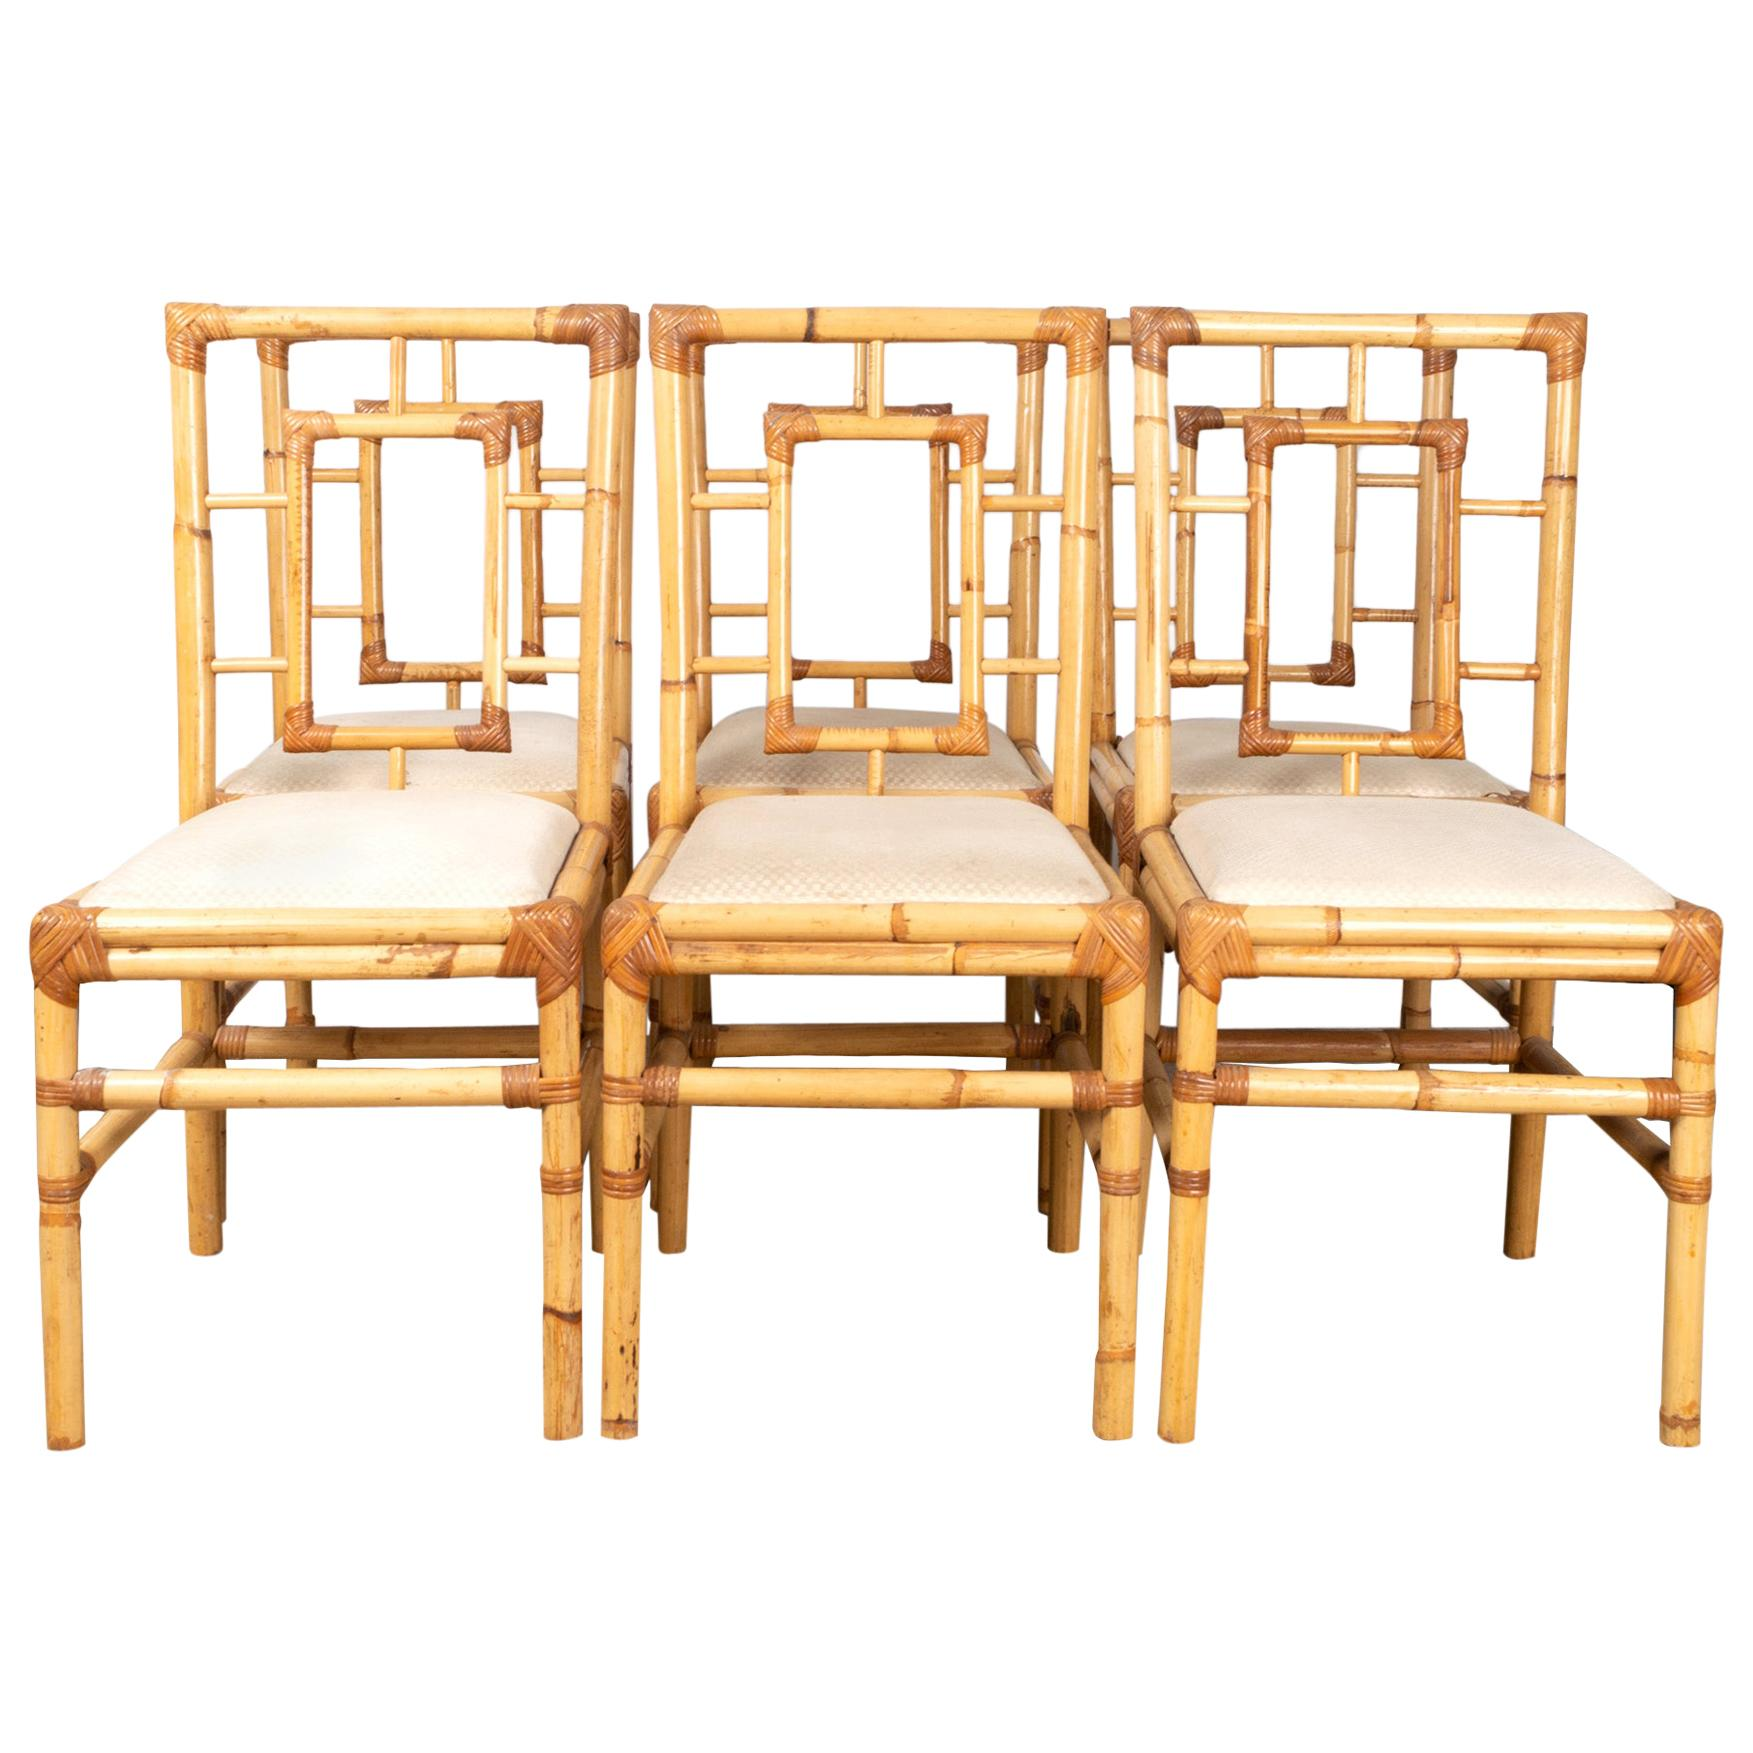 Midcentury Italian Rattan and Bamboo Dining Chairs by Dal Vera, circa 1960